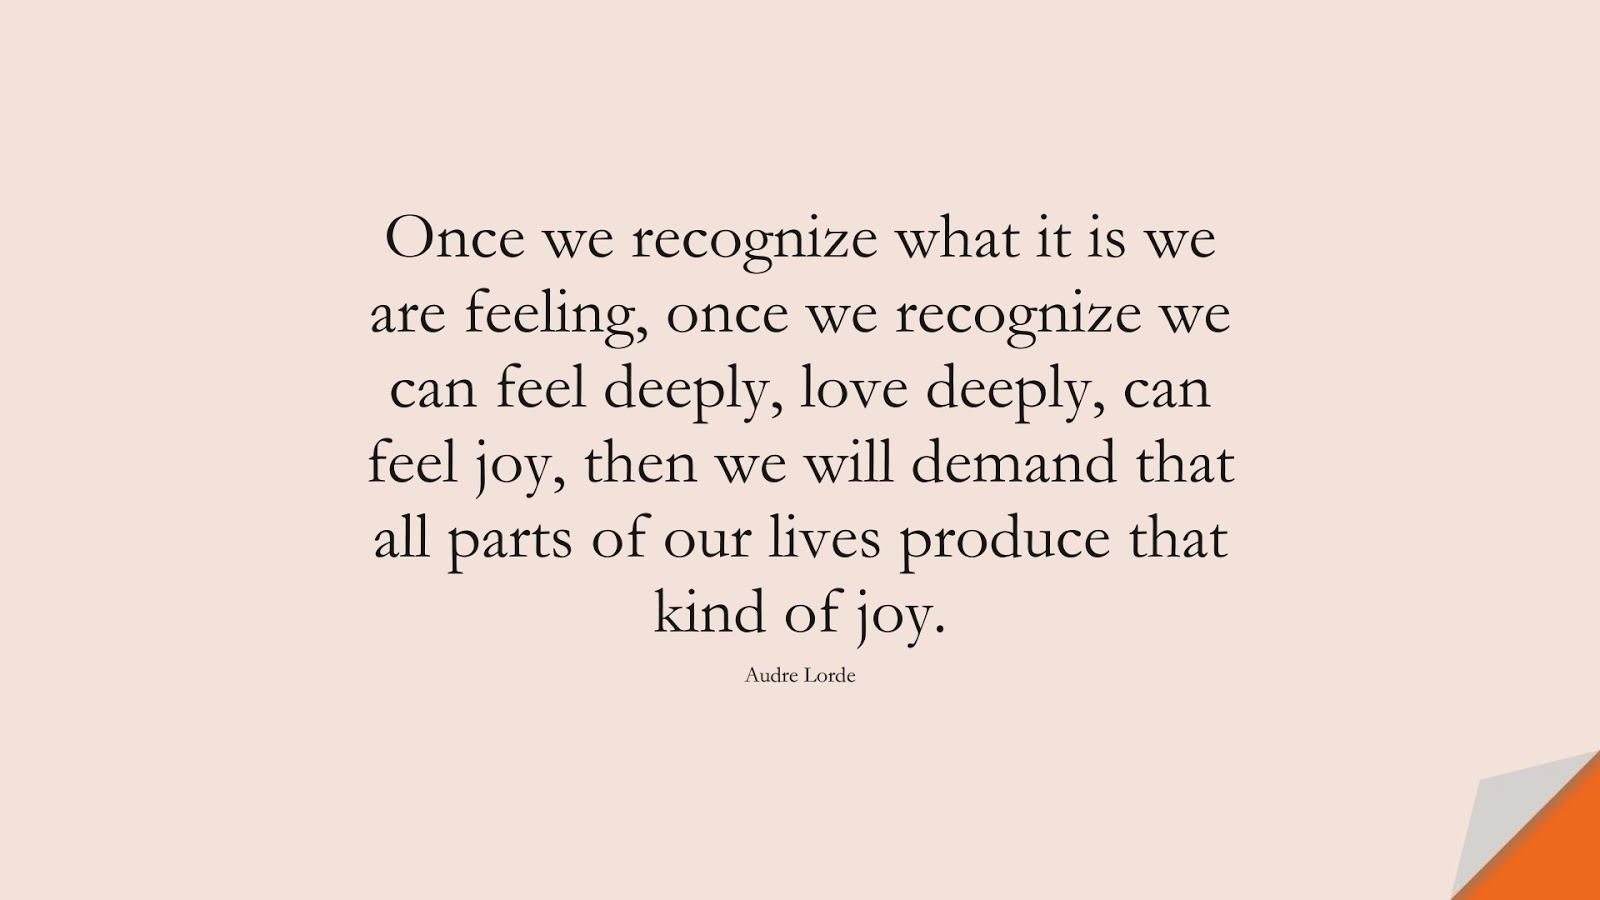 Once we recognize what it is we are feeling, once we recognize we can feel deeply, love deeply, can feel joy, then we will demand that all parts of our lives produce that kind of joy. (Audre Lorde);  #LoveQuotes